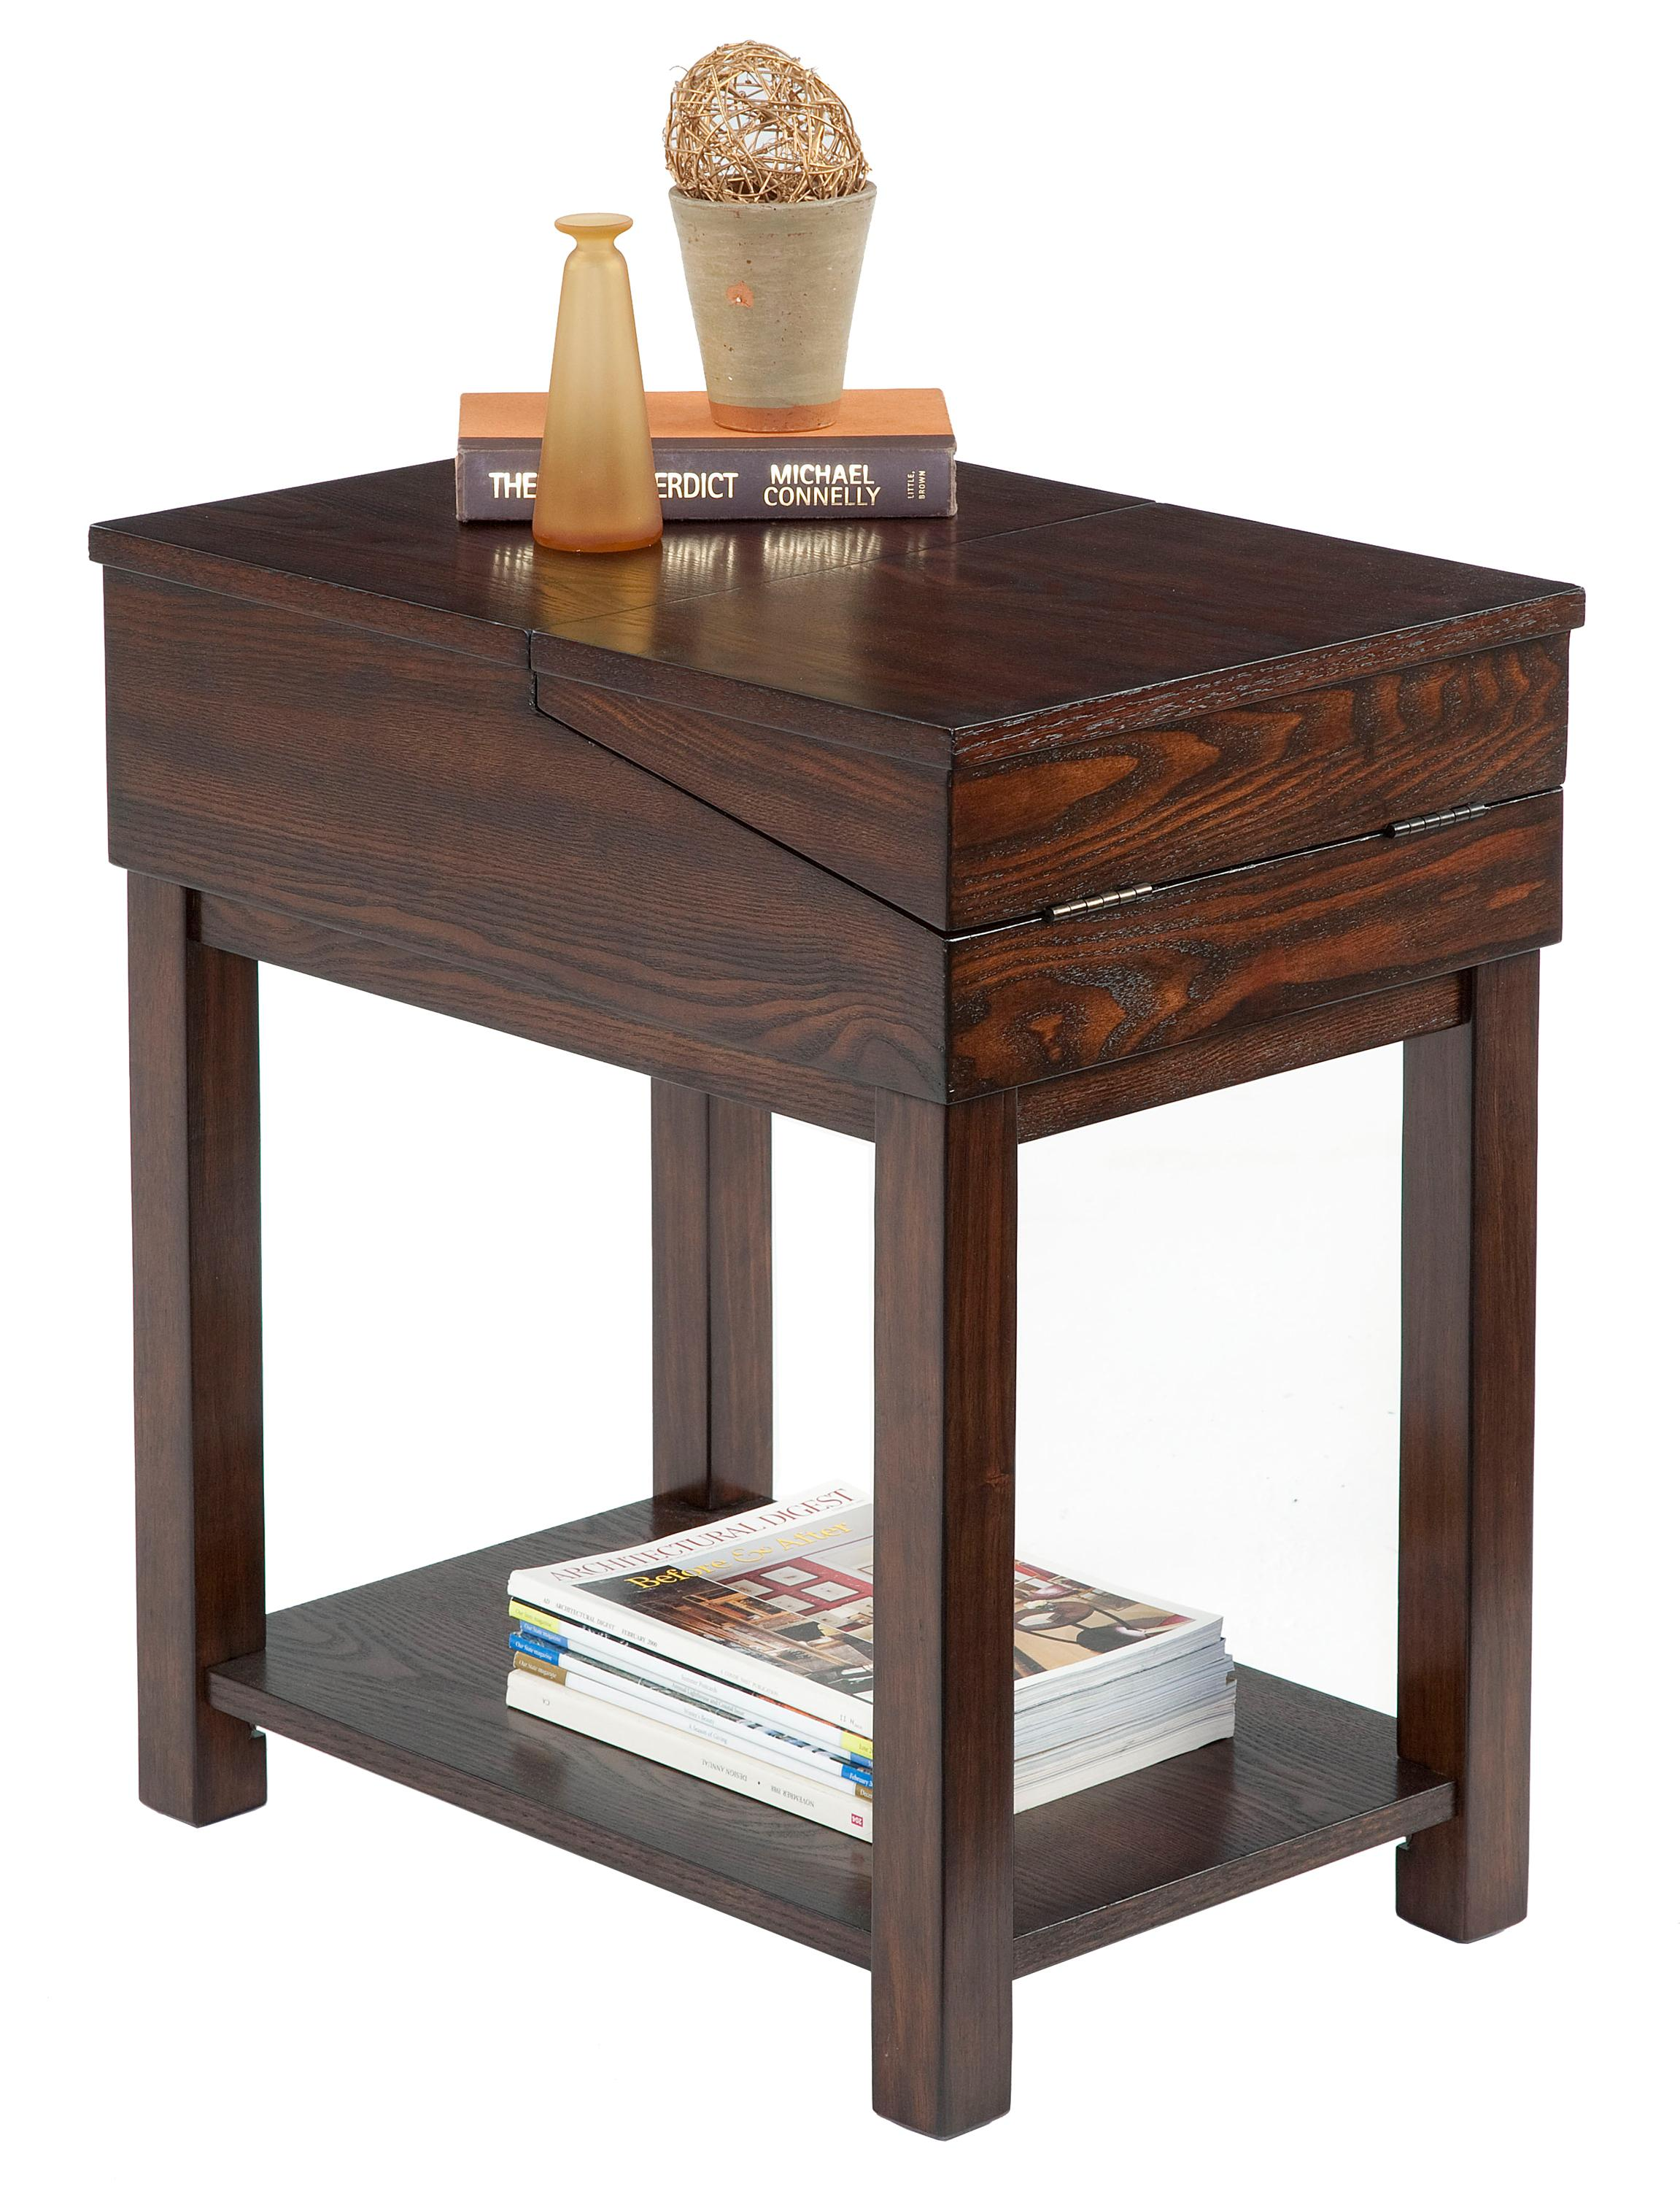 chair side tables with storage tied to progressive furniture chairsides chairside table flip open top